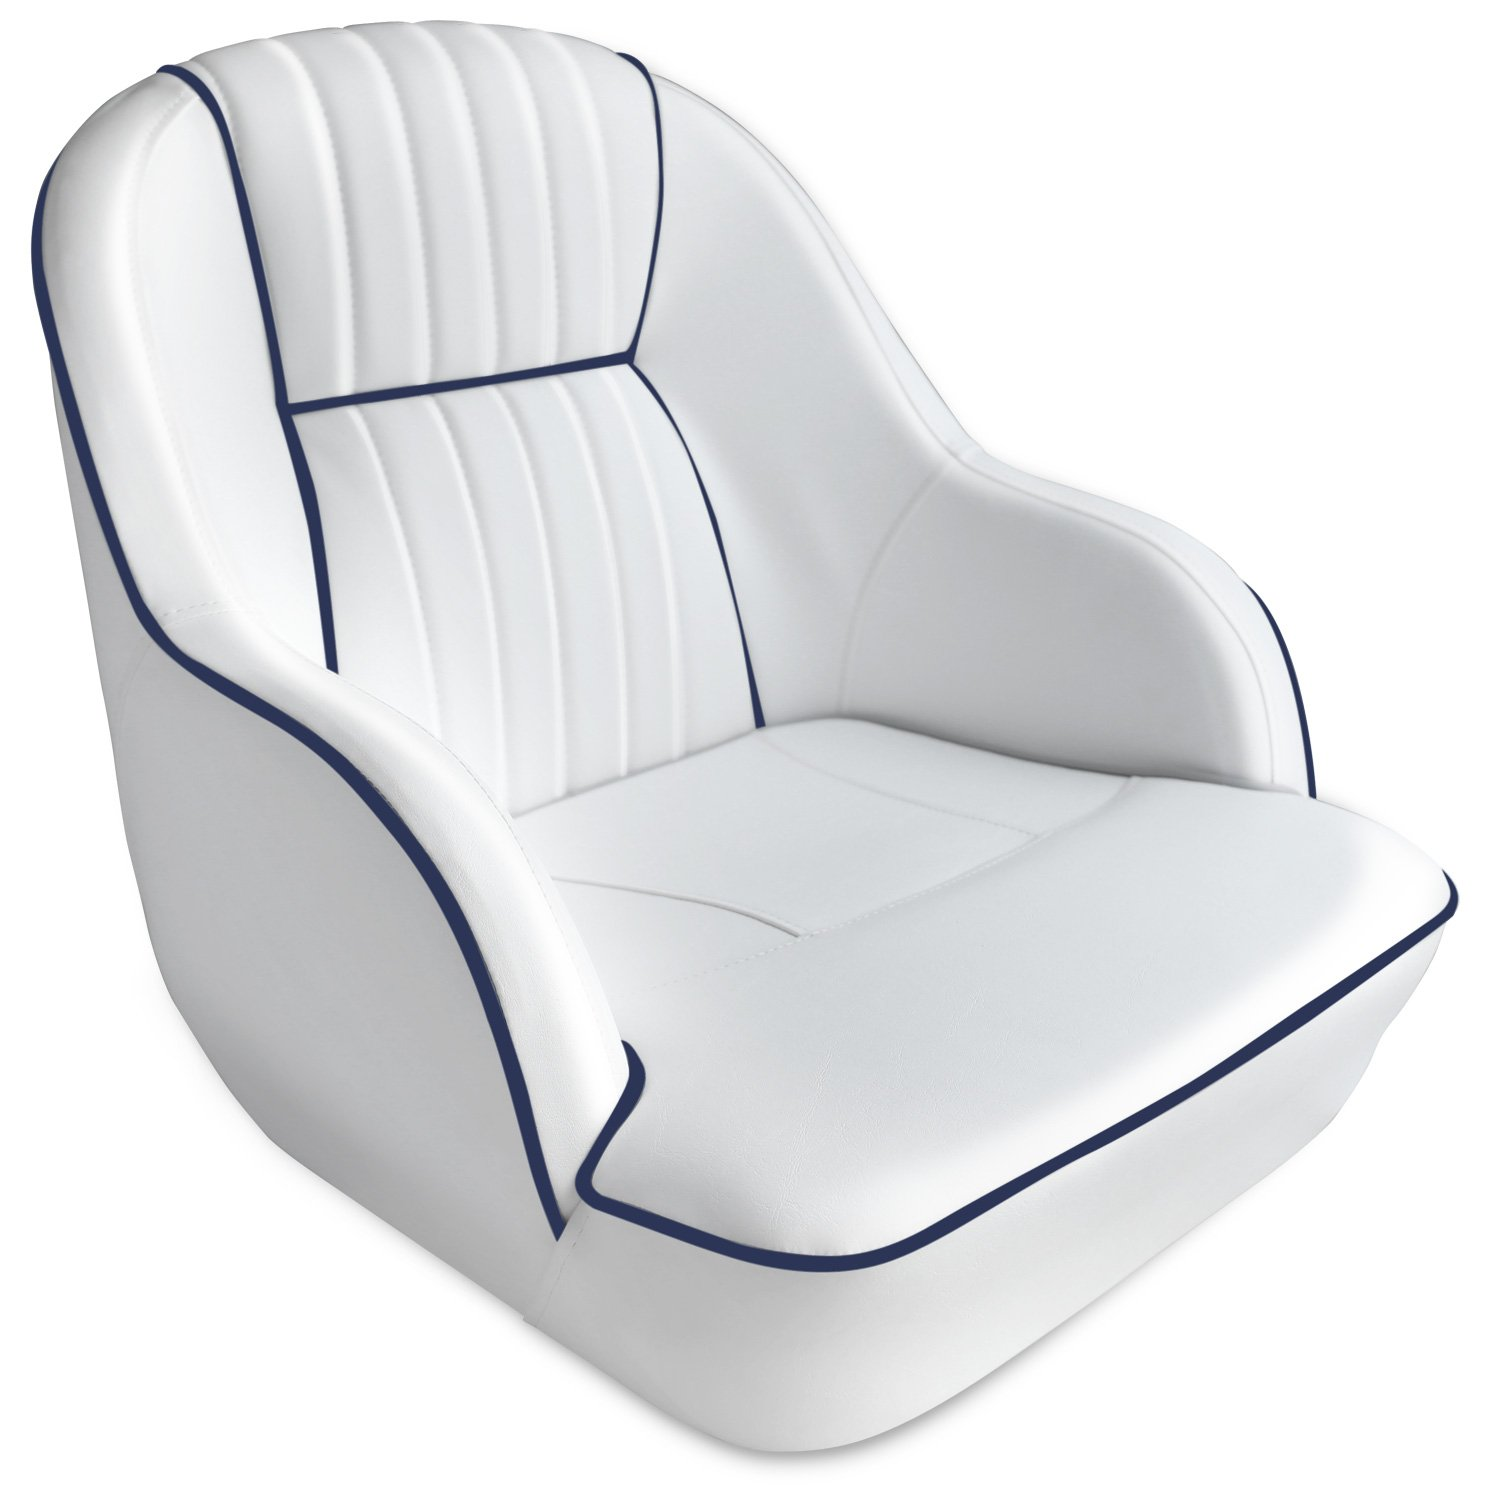 Leader Accessories Pontoon Captains Bucket Seat Boat Seat (White/Navy Blue Piping) by Leader Accessories